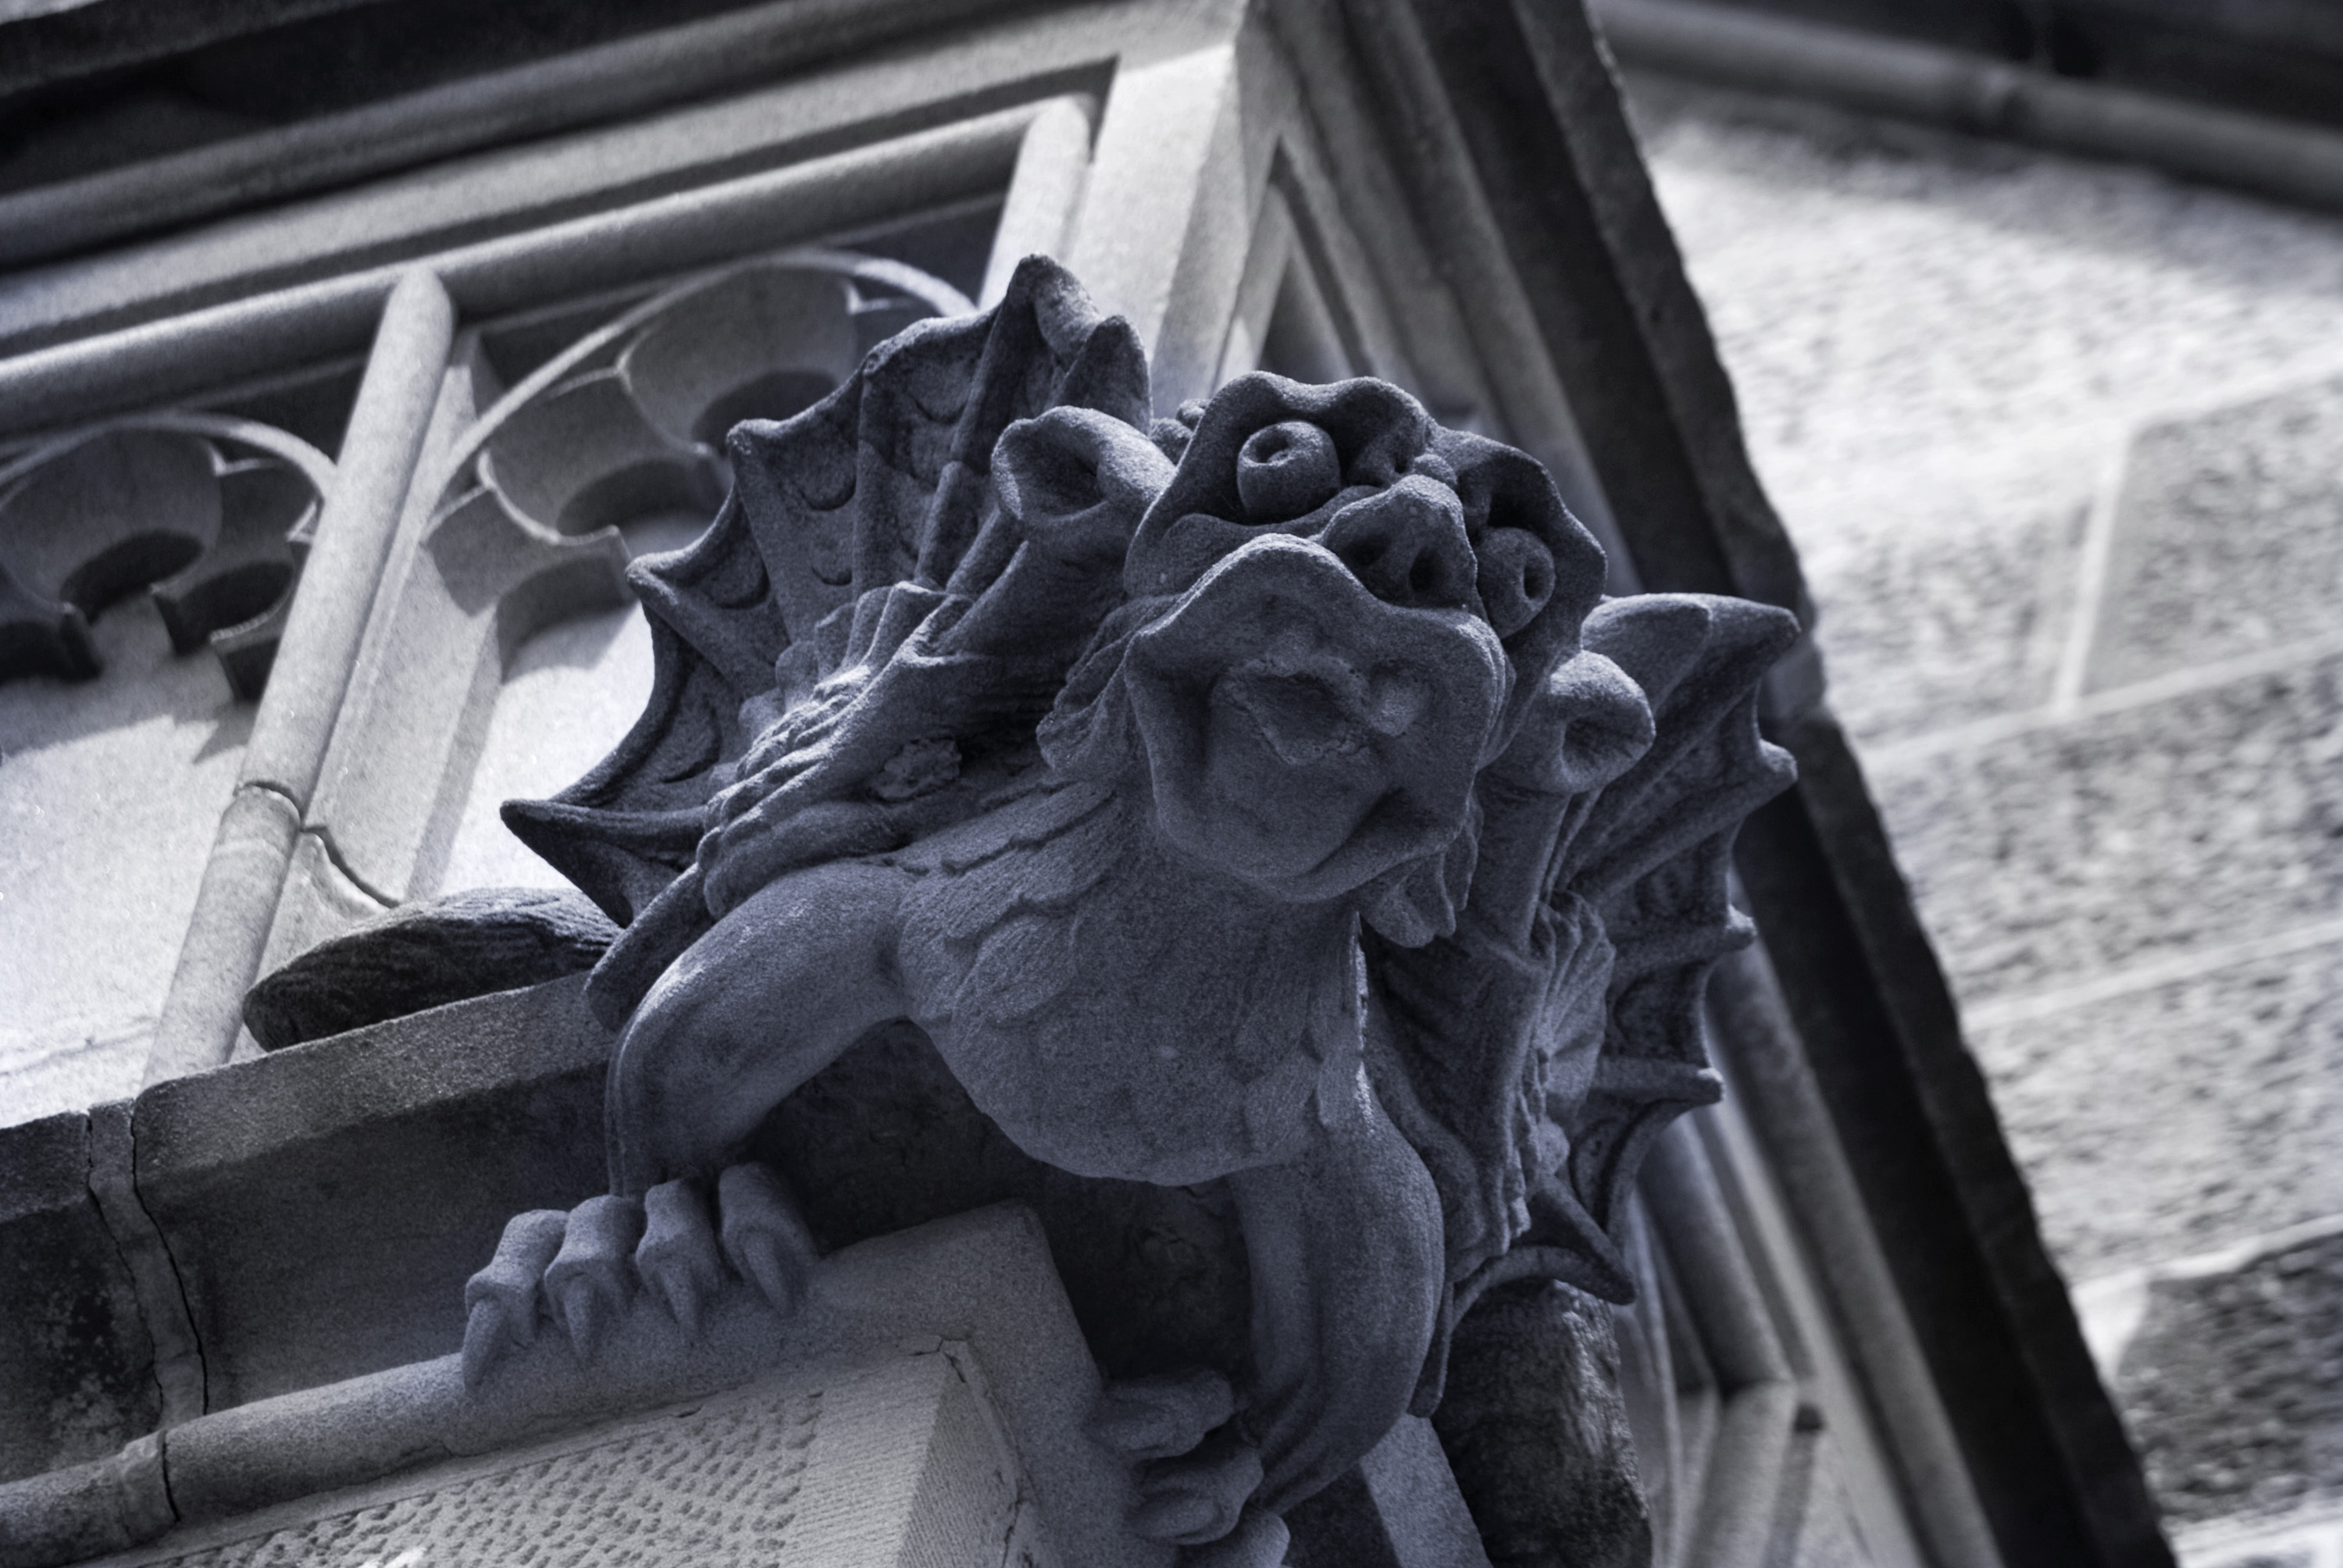 grotesque stone chimera decoration